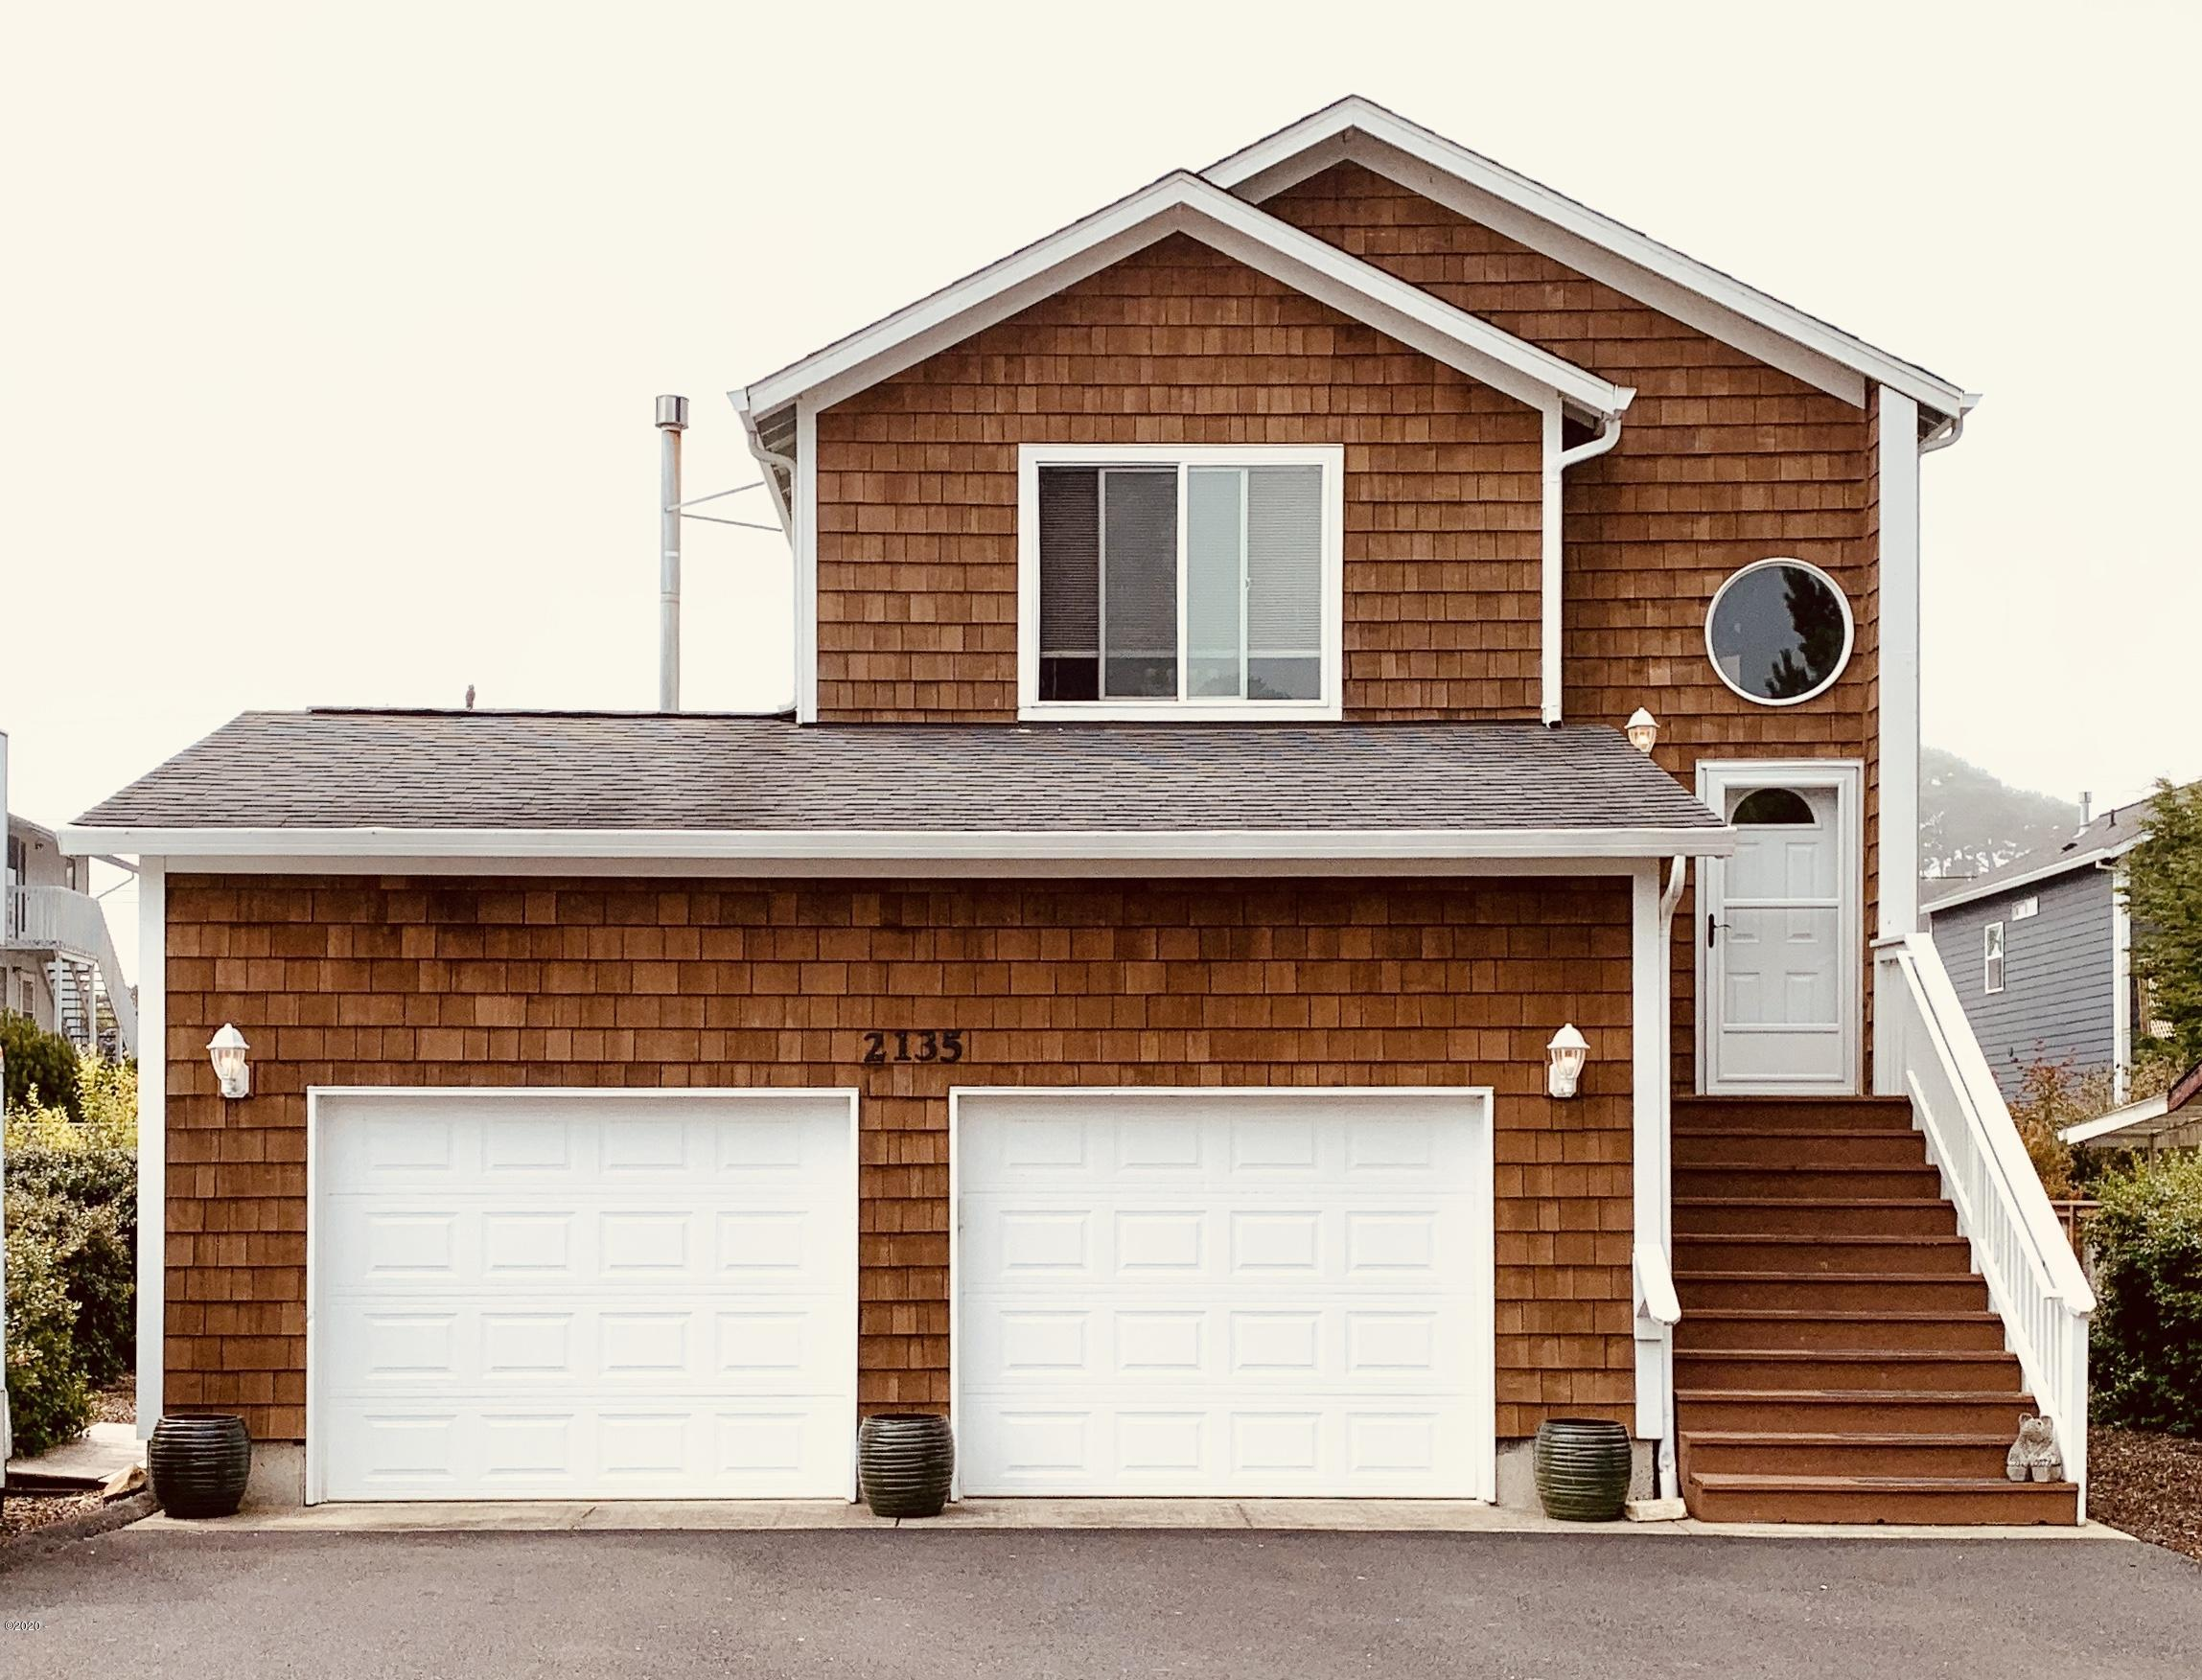 2135 NW Keel Ave, Lincoln City, OR 97367 - Street View